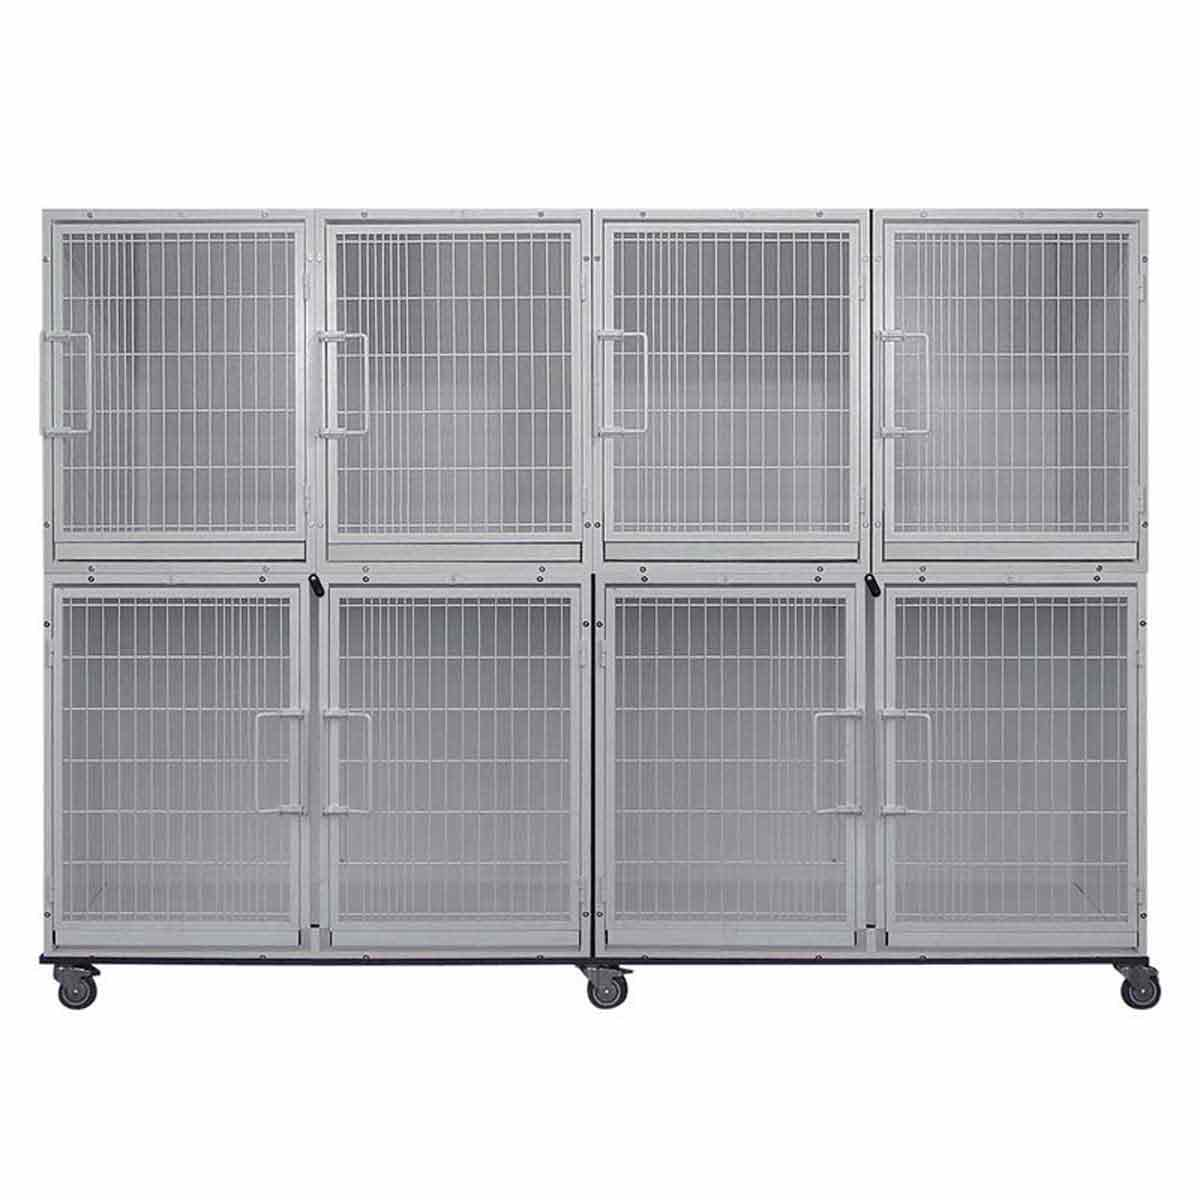 Paw Brothers Professional Short Modular Eight Cage Bank Without Grates, Pans or Dividers